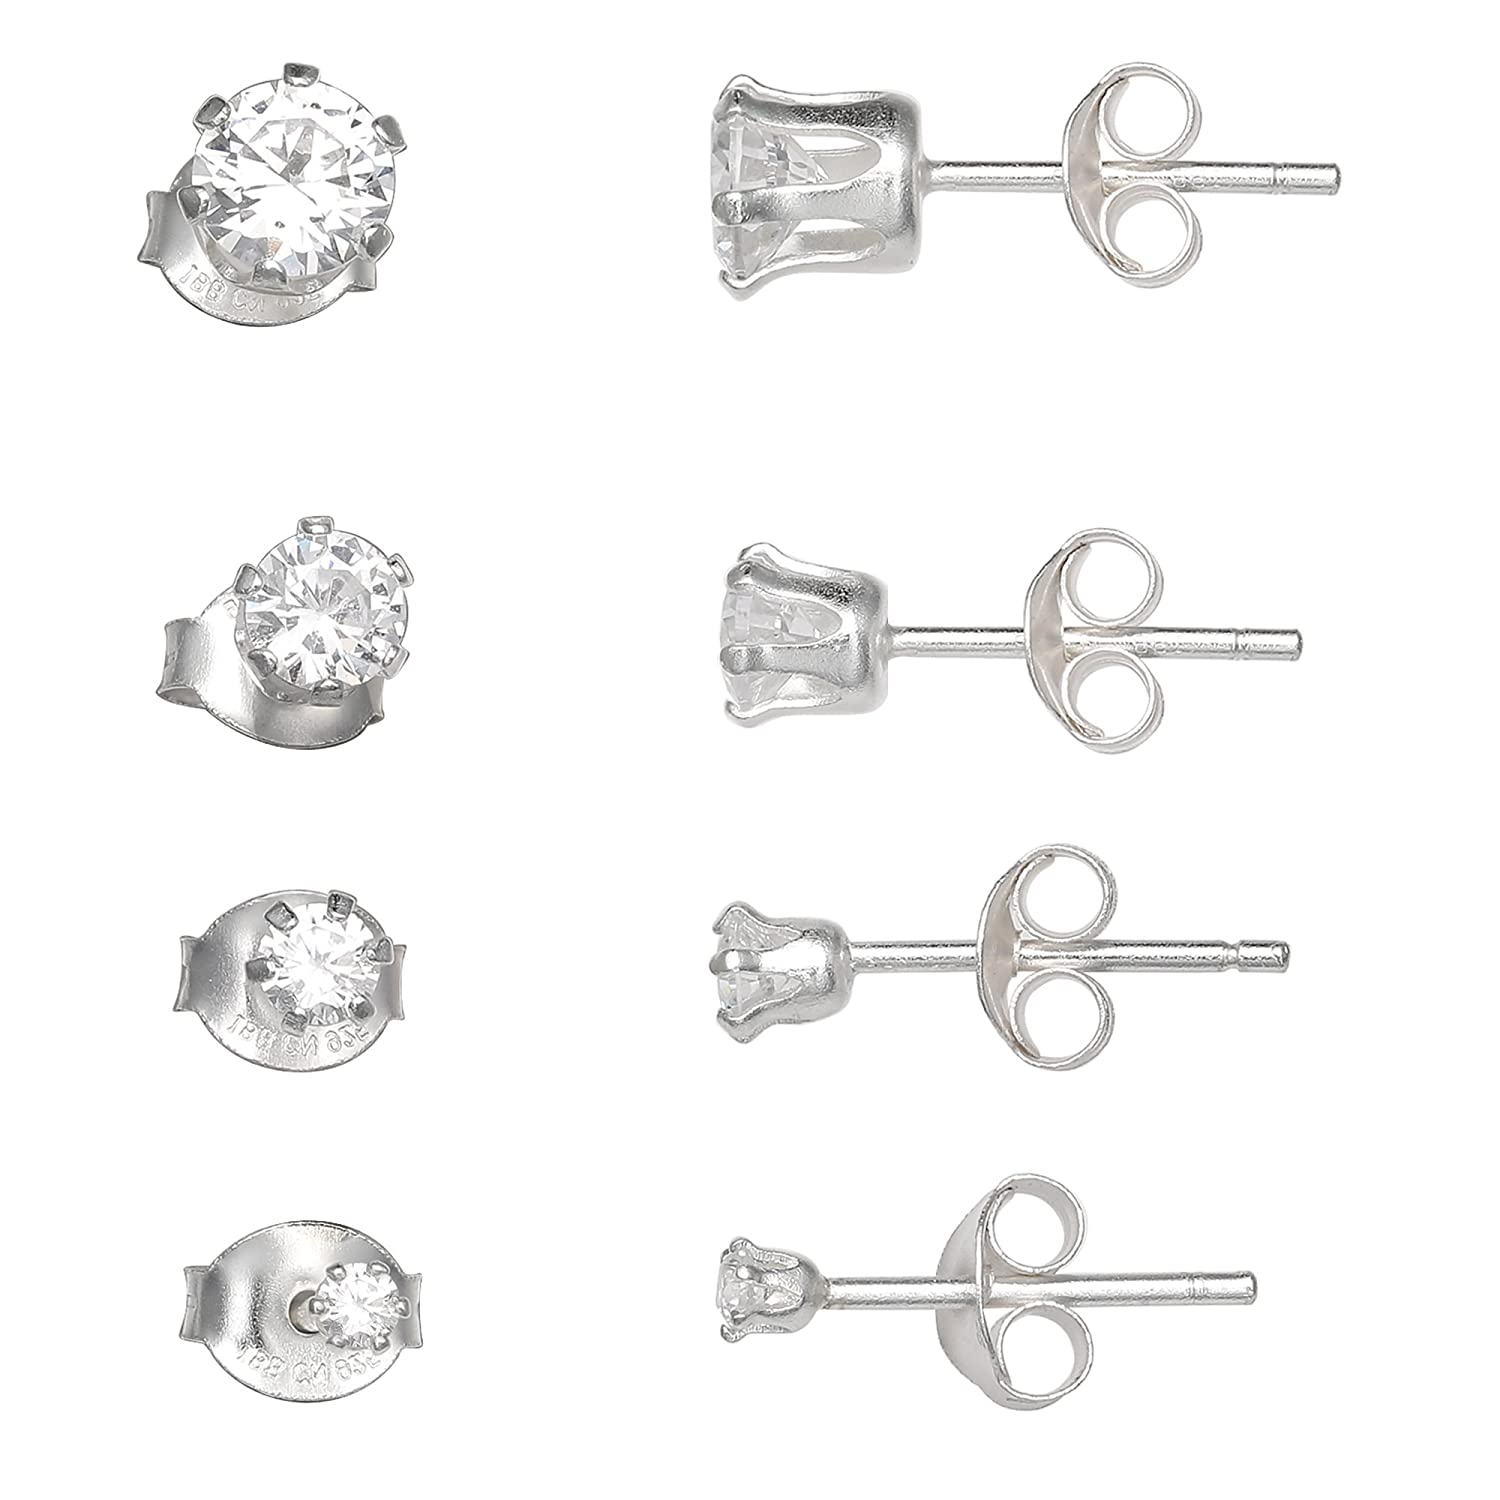 MILLA 925 Sterling Silver Cubic Zirconia 4 Pair Quad Stud Earring Set